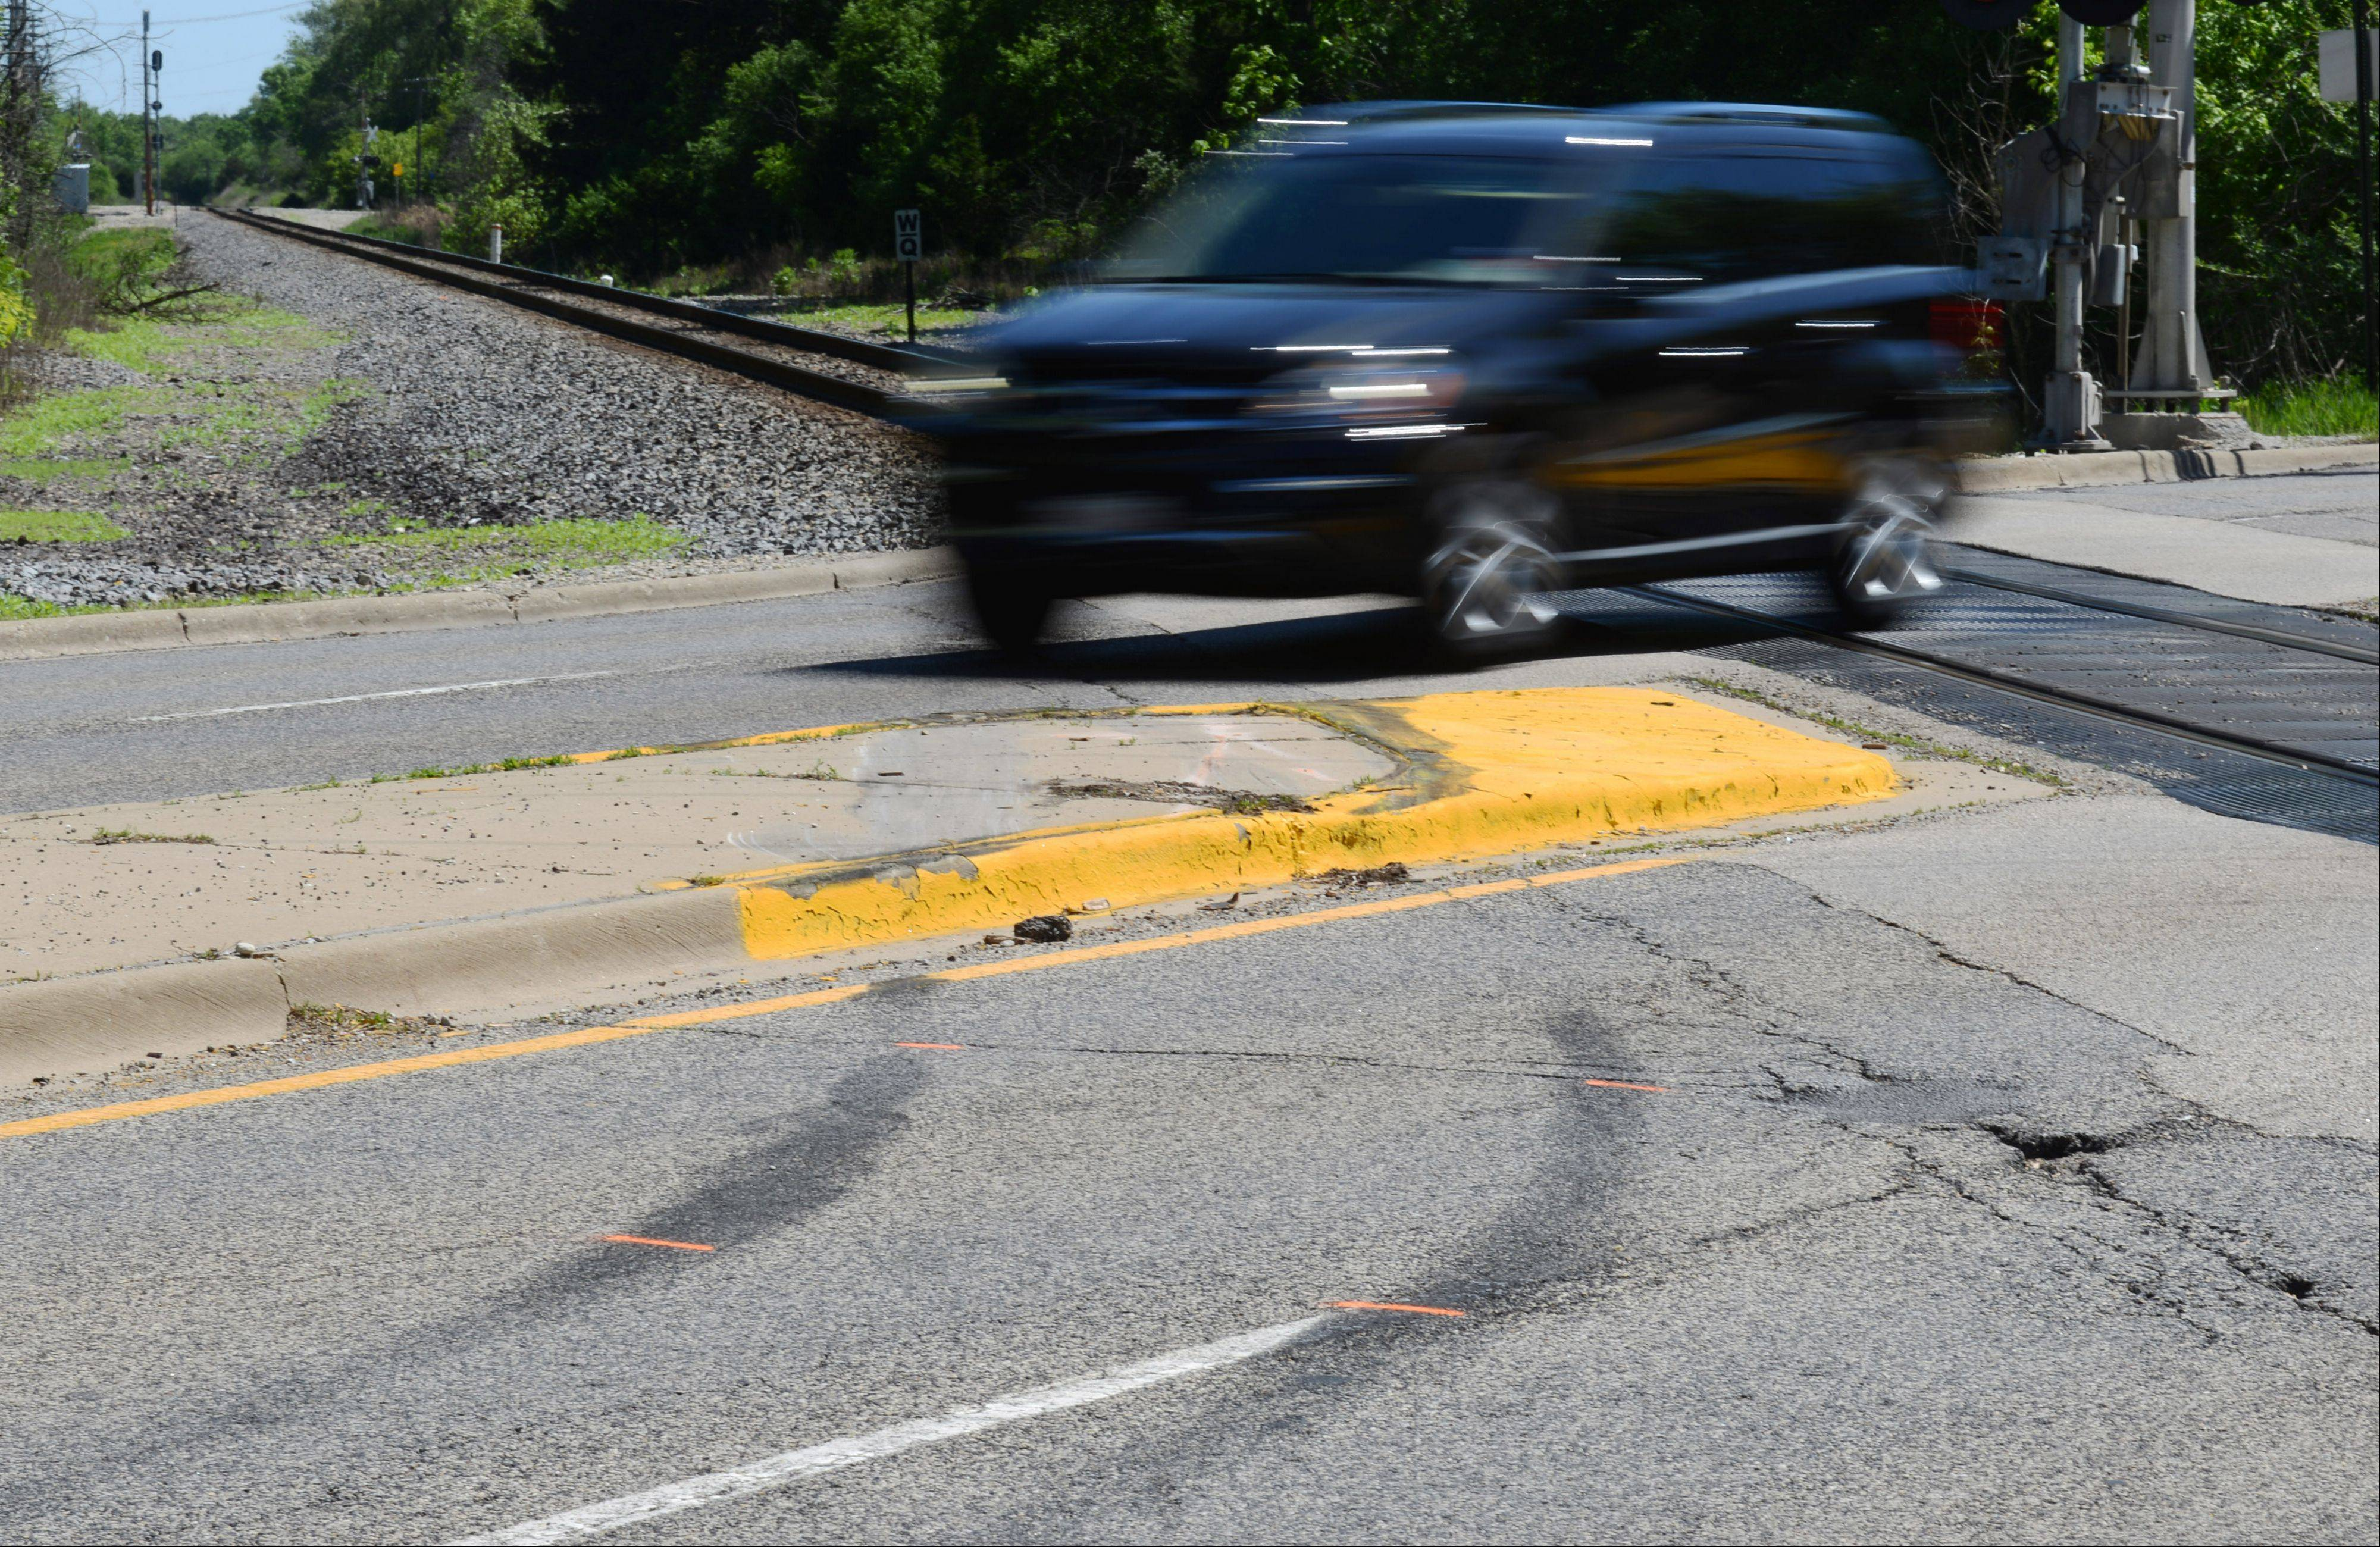 Tire marks and police investigation paint remain on Route 14 at the CN crossing.